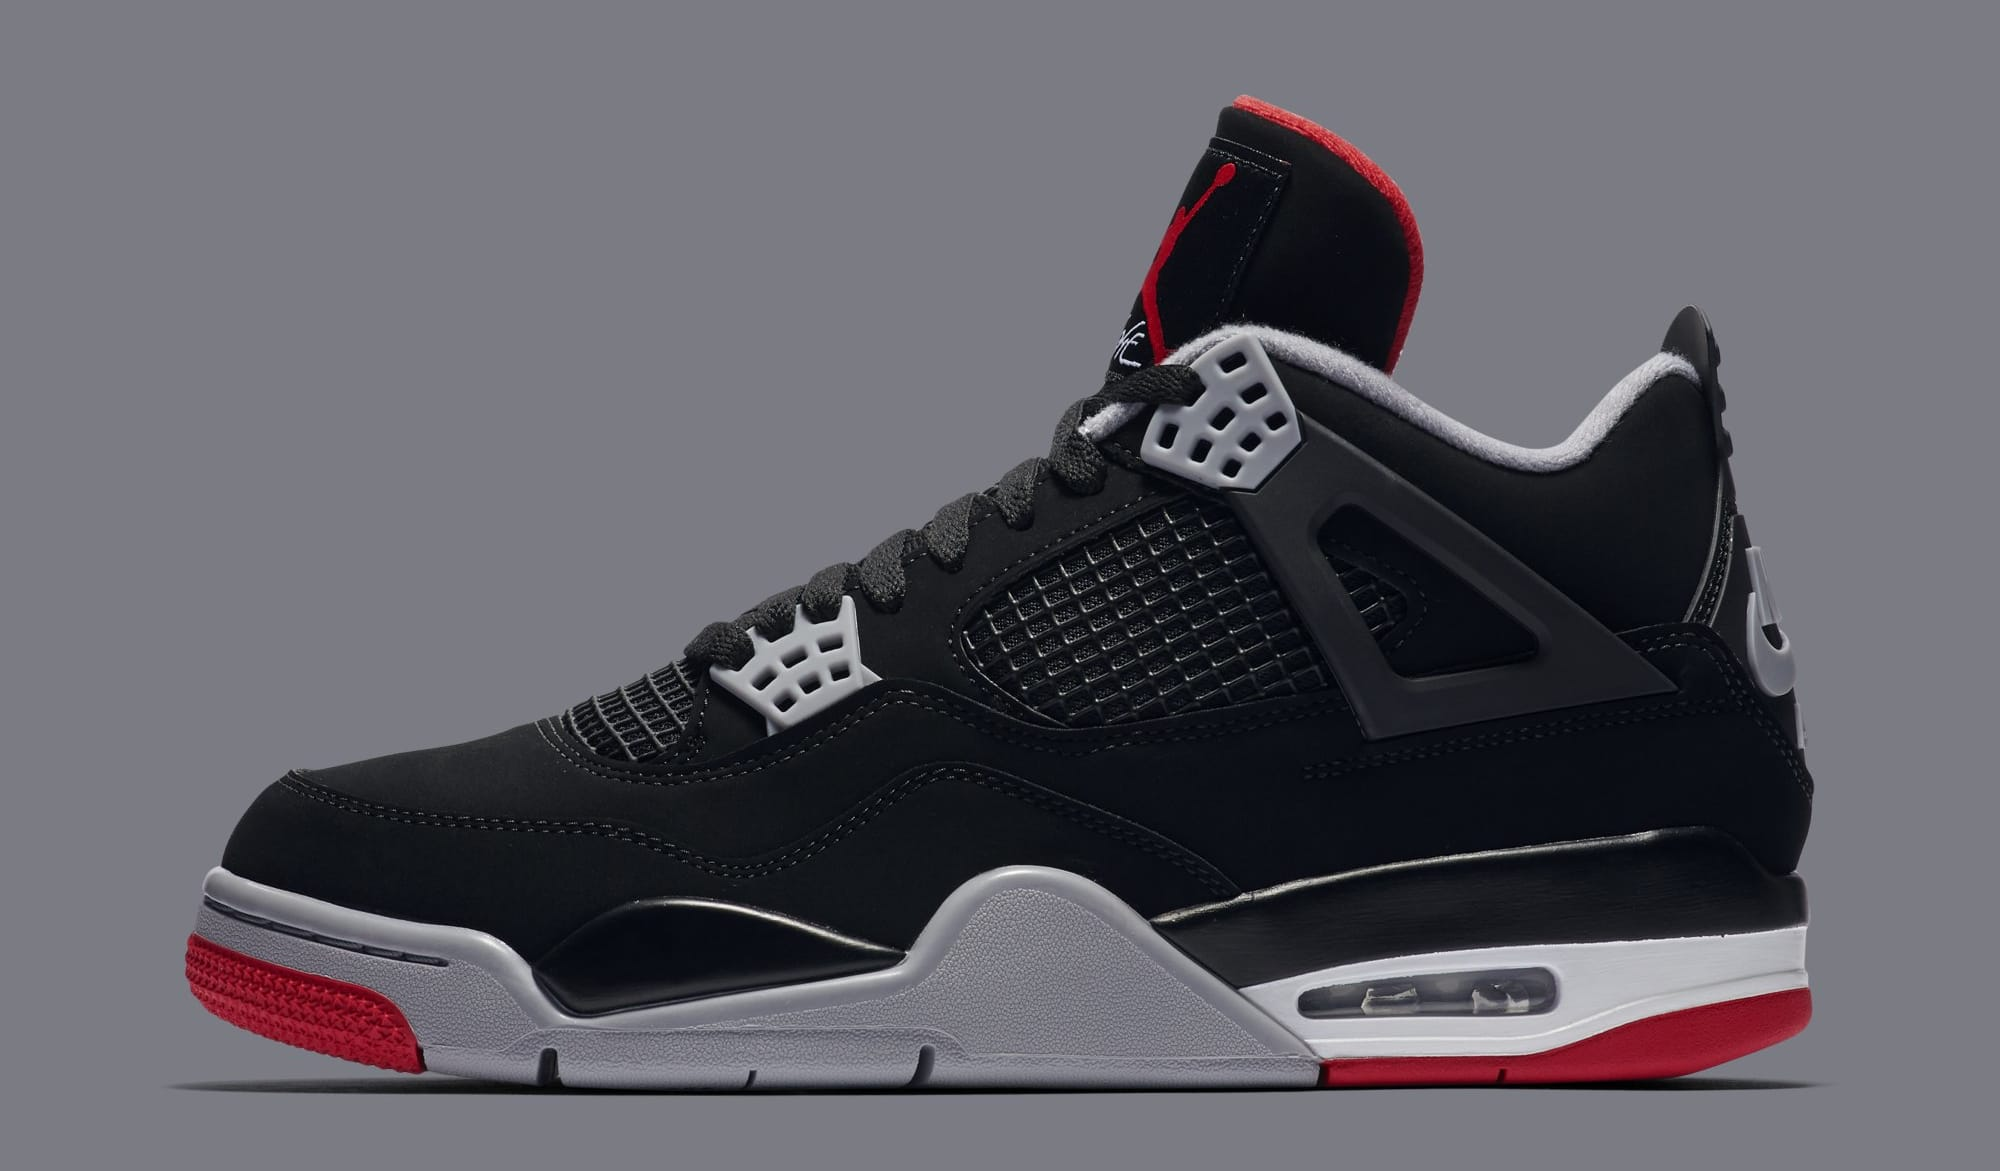 premium selection 73e96 36952 Air Jordan 4 Retro 'Black/Cement Grey/Summit White/Fire Red' 308497 ...